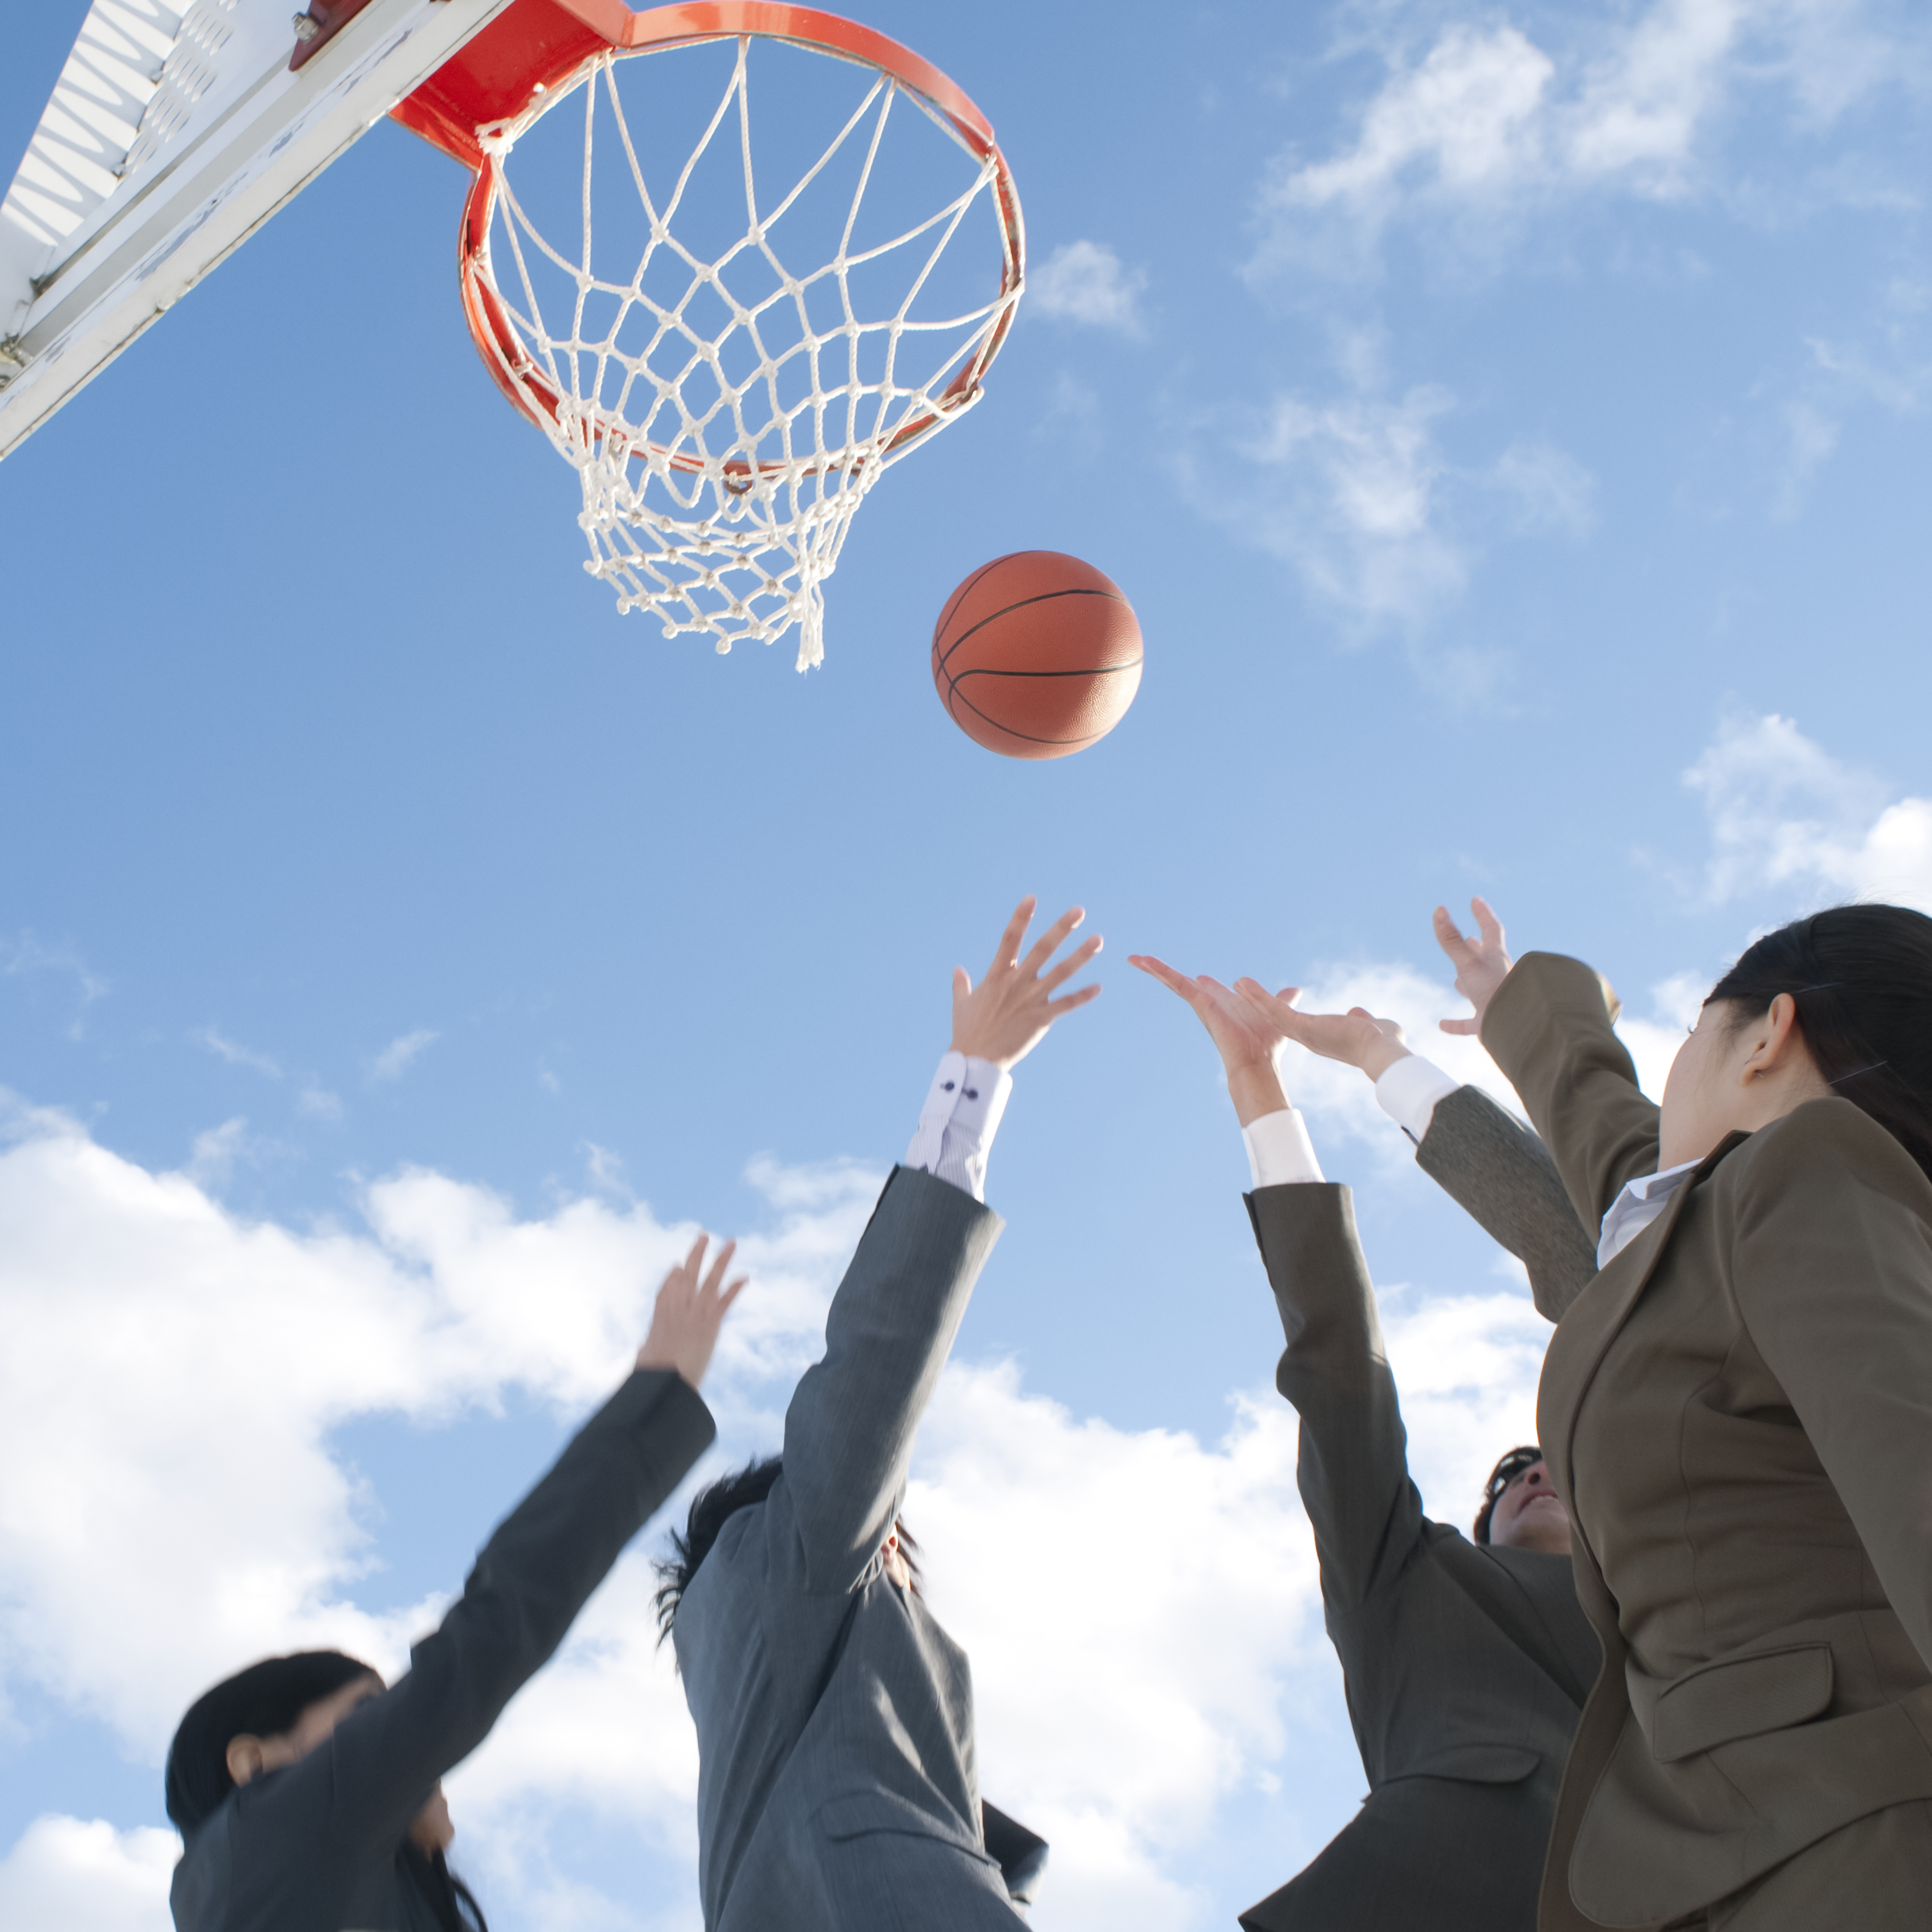 Photo of people in business suits reaching up toward a basketball that is in the air near a basketball hoop.